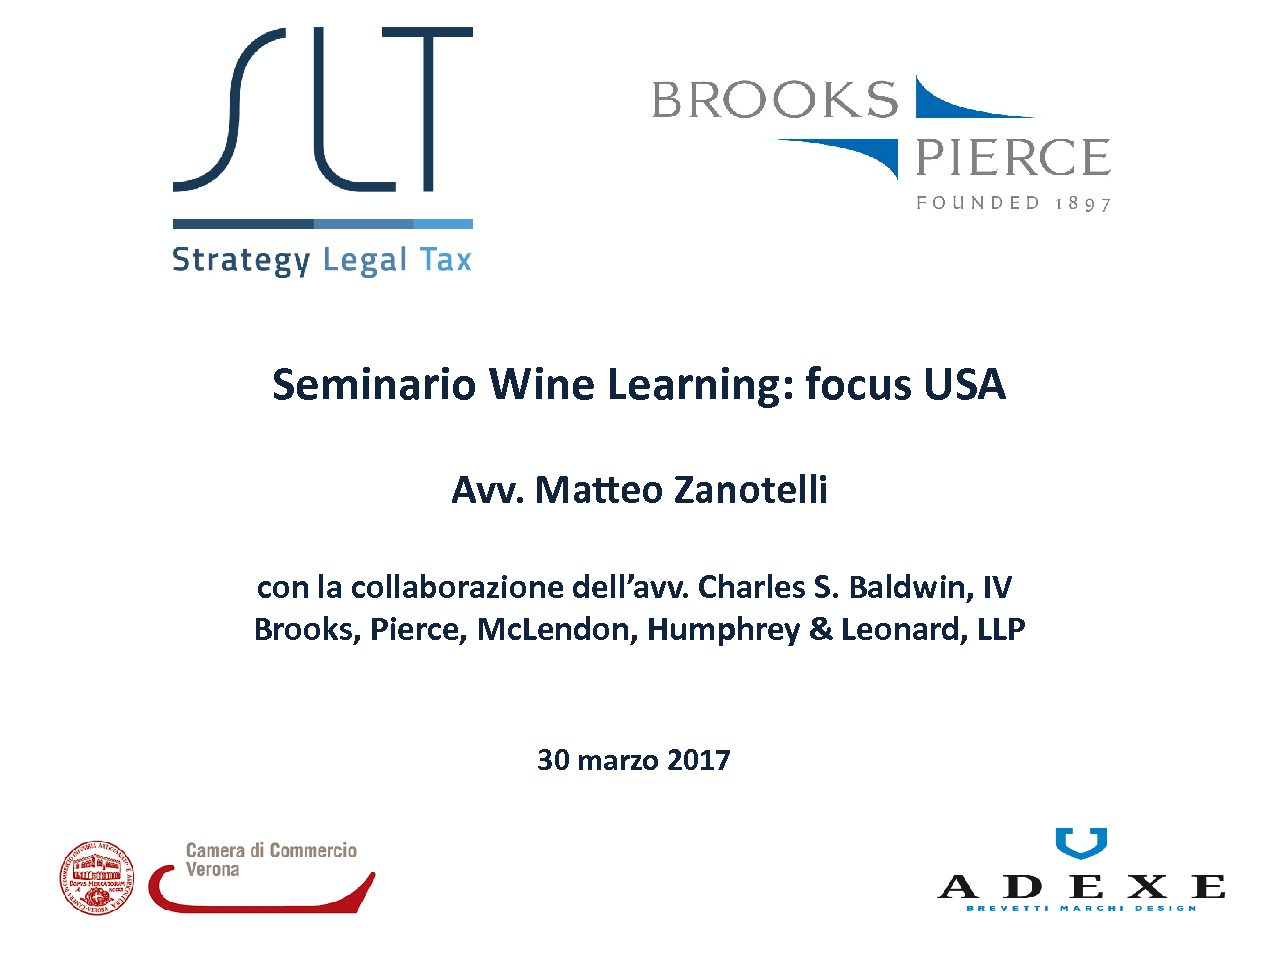 Matteo Zanotelli relatore al seminario Wine Learning: Focus USA organizzato dalla Camera di Commercio di Verona